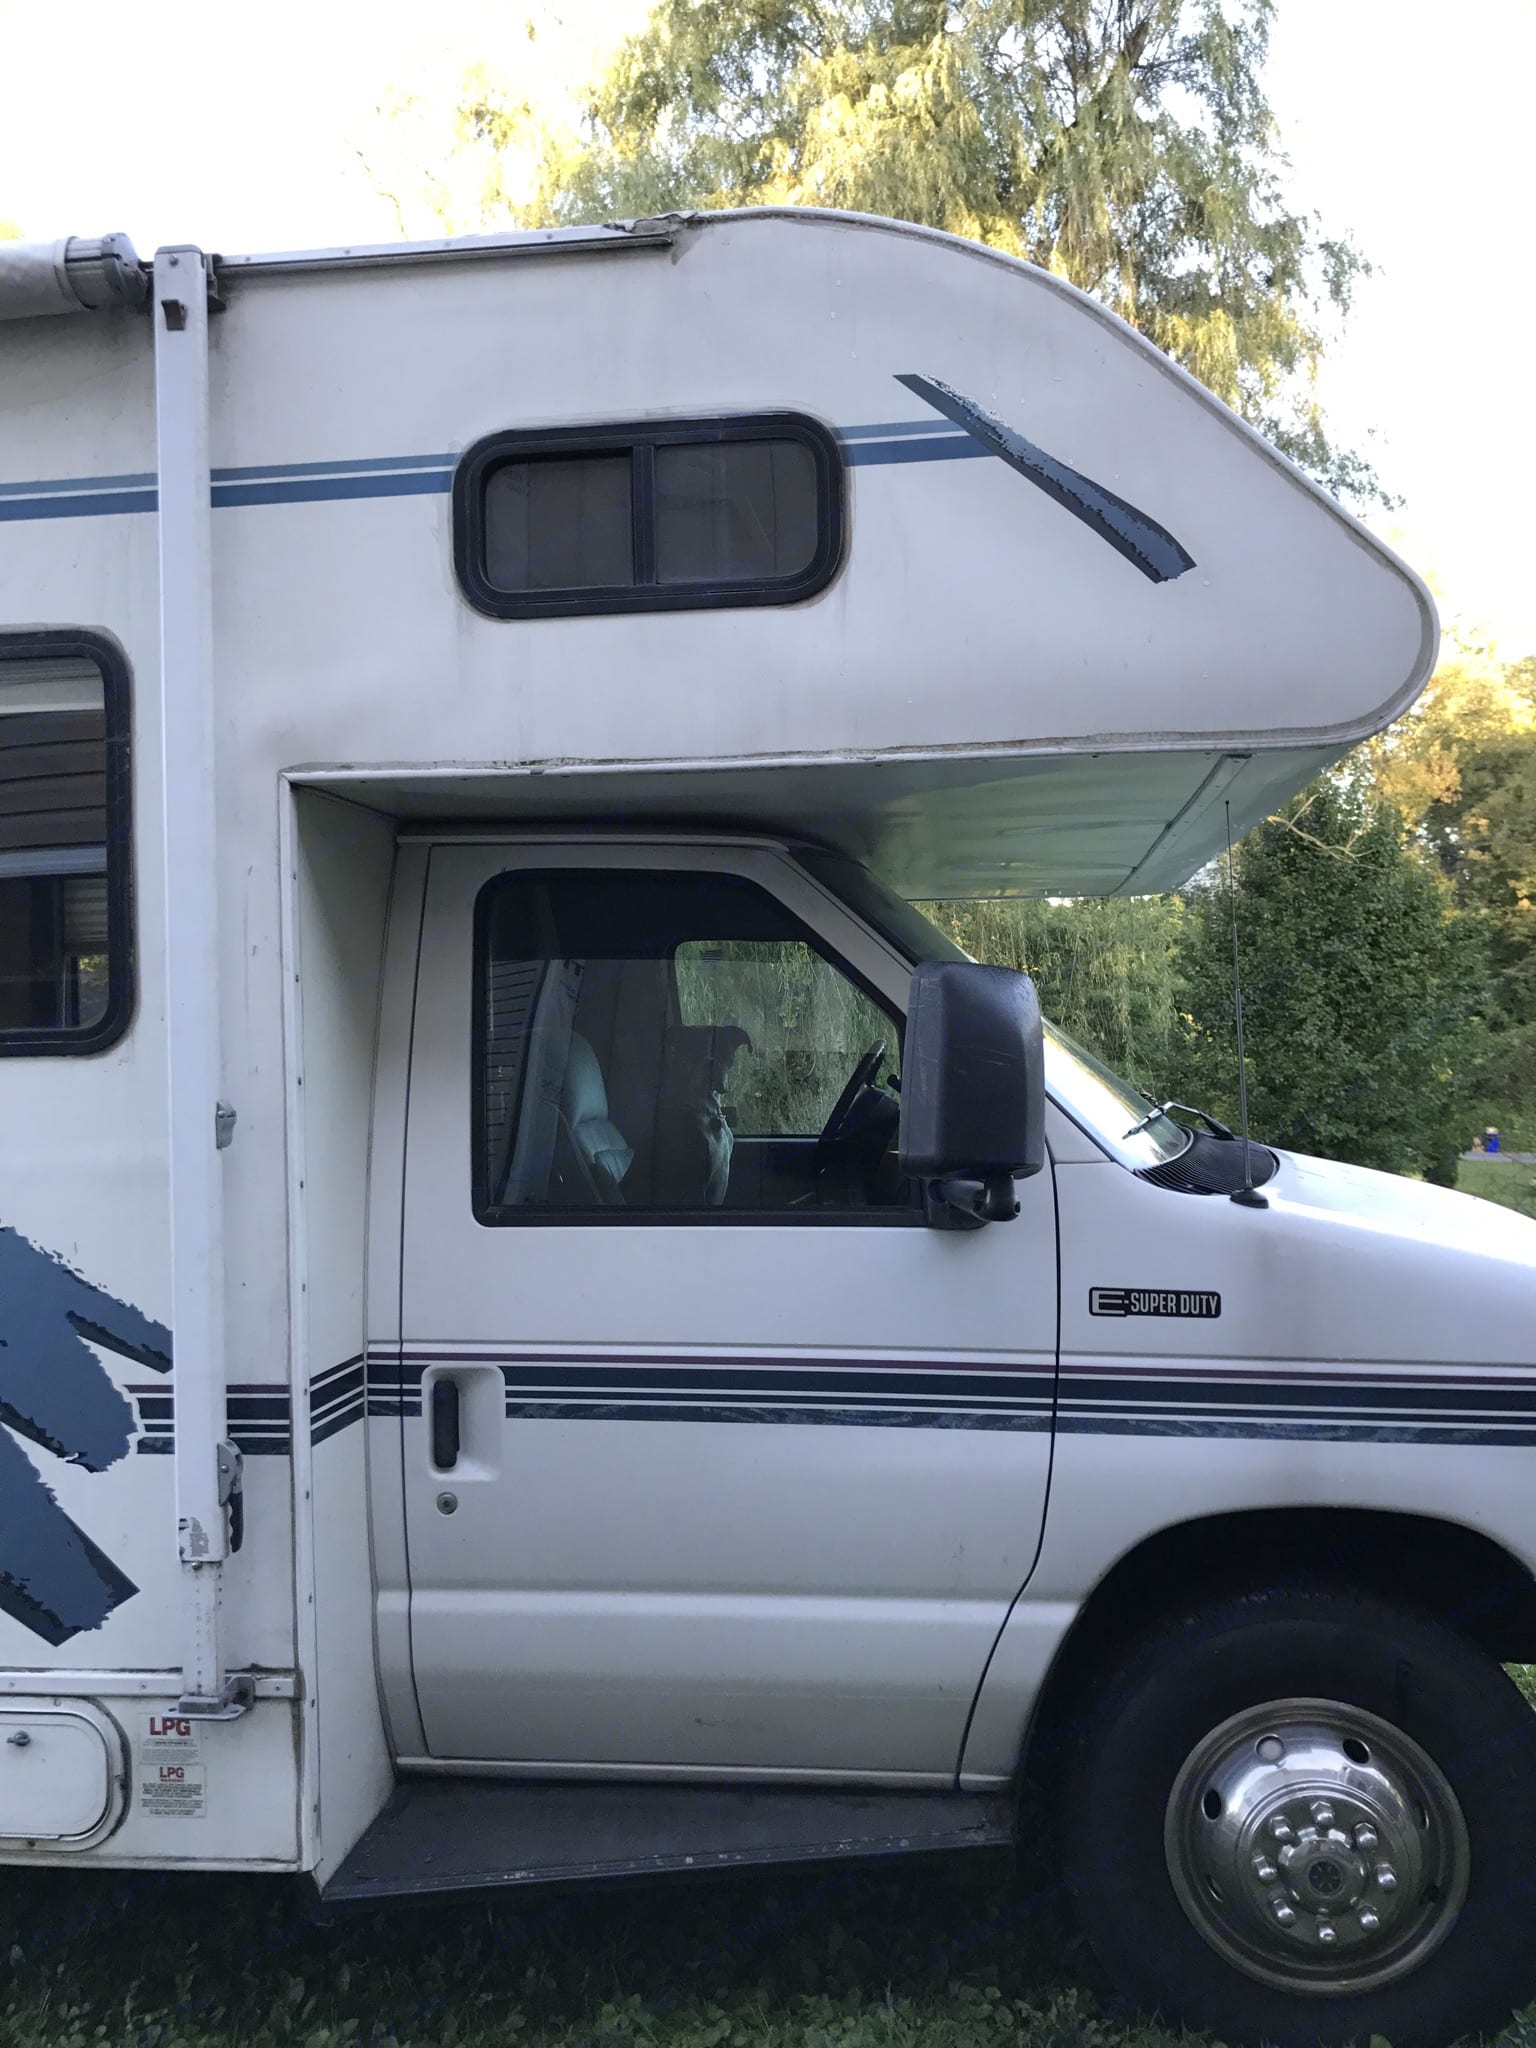 Includes outside pass-through storage for lawn furniture, etc. 6 seat belts. Awning. Fleetwood Tioga Montara 1997